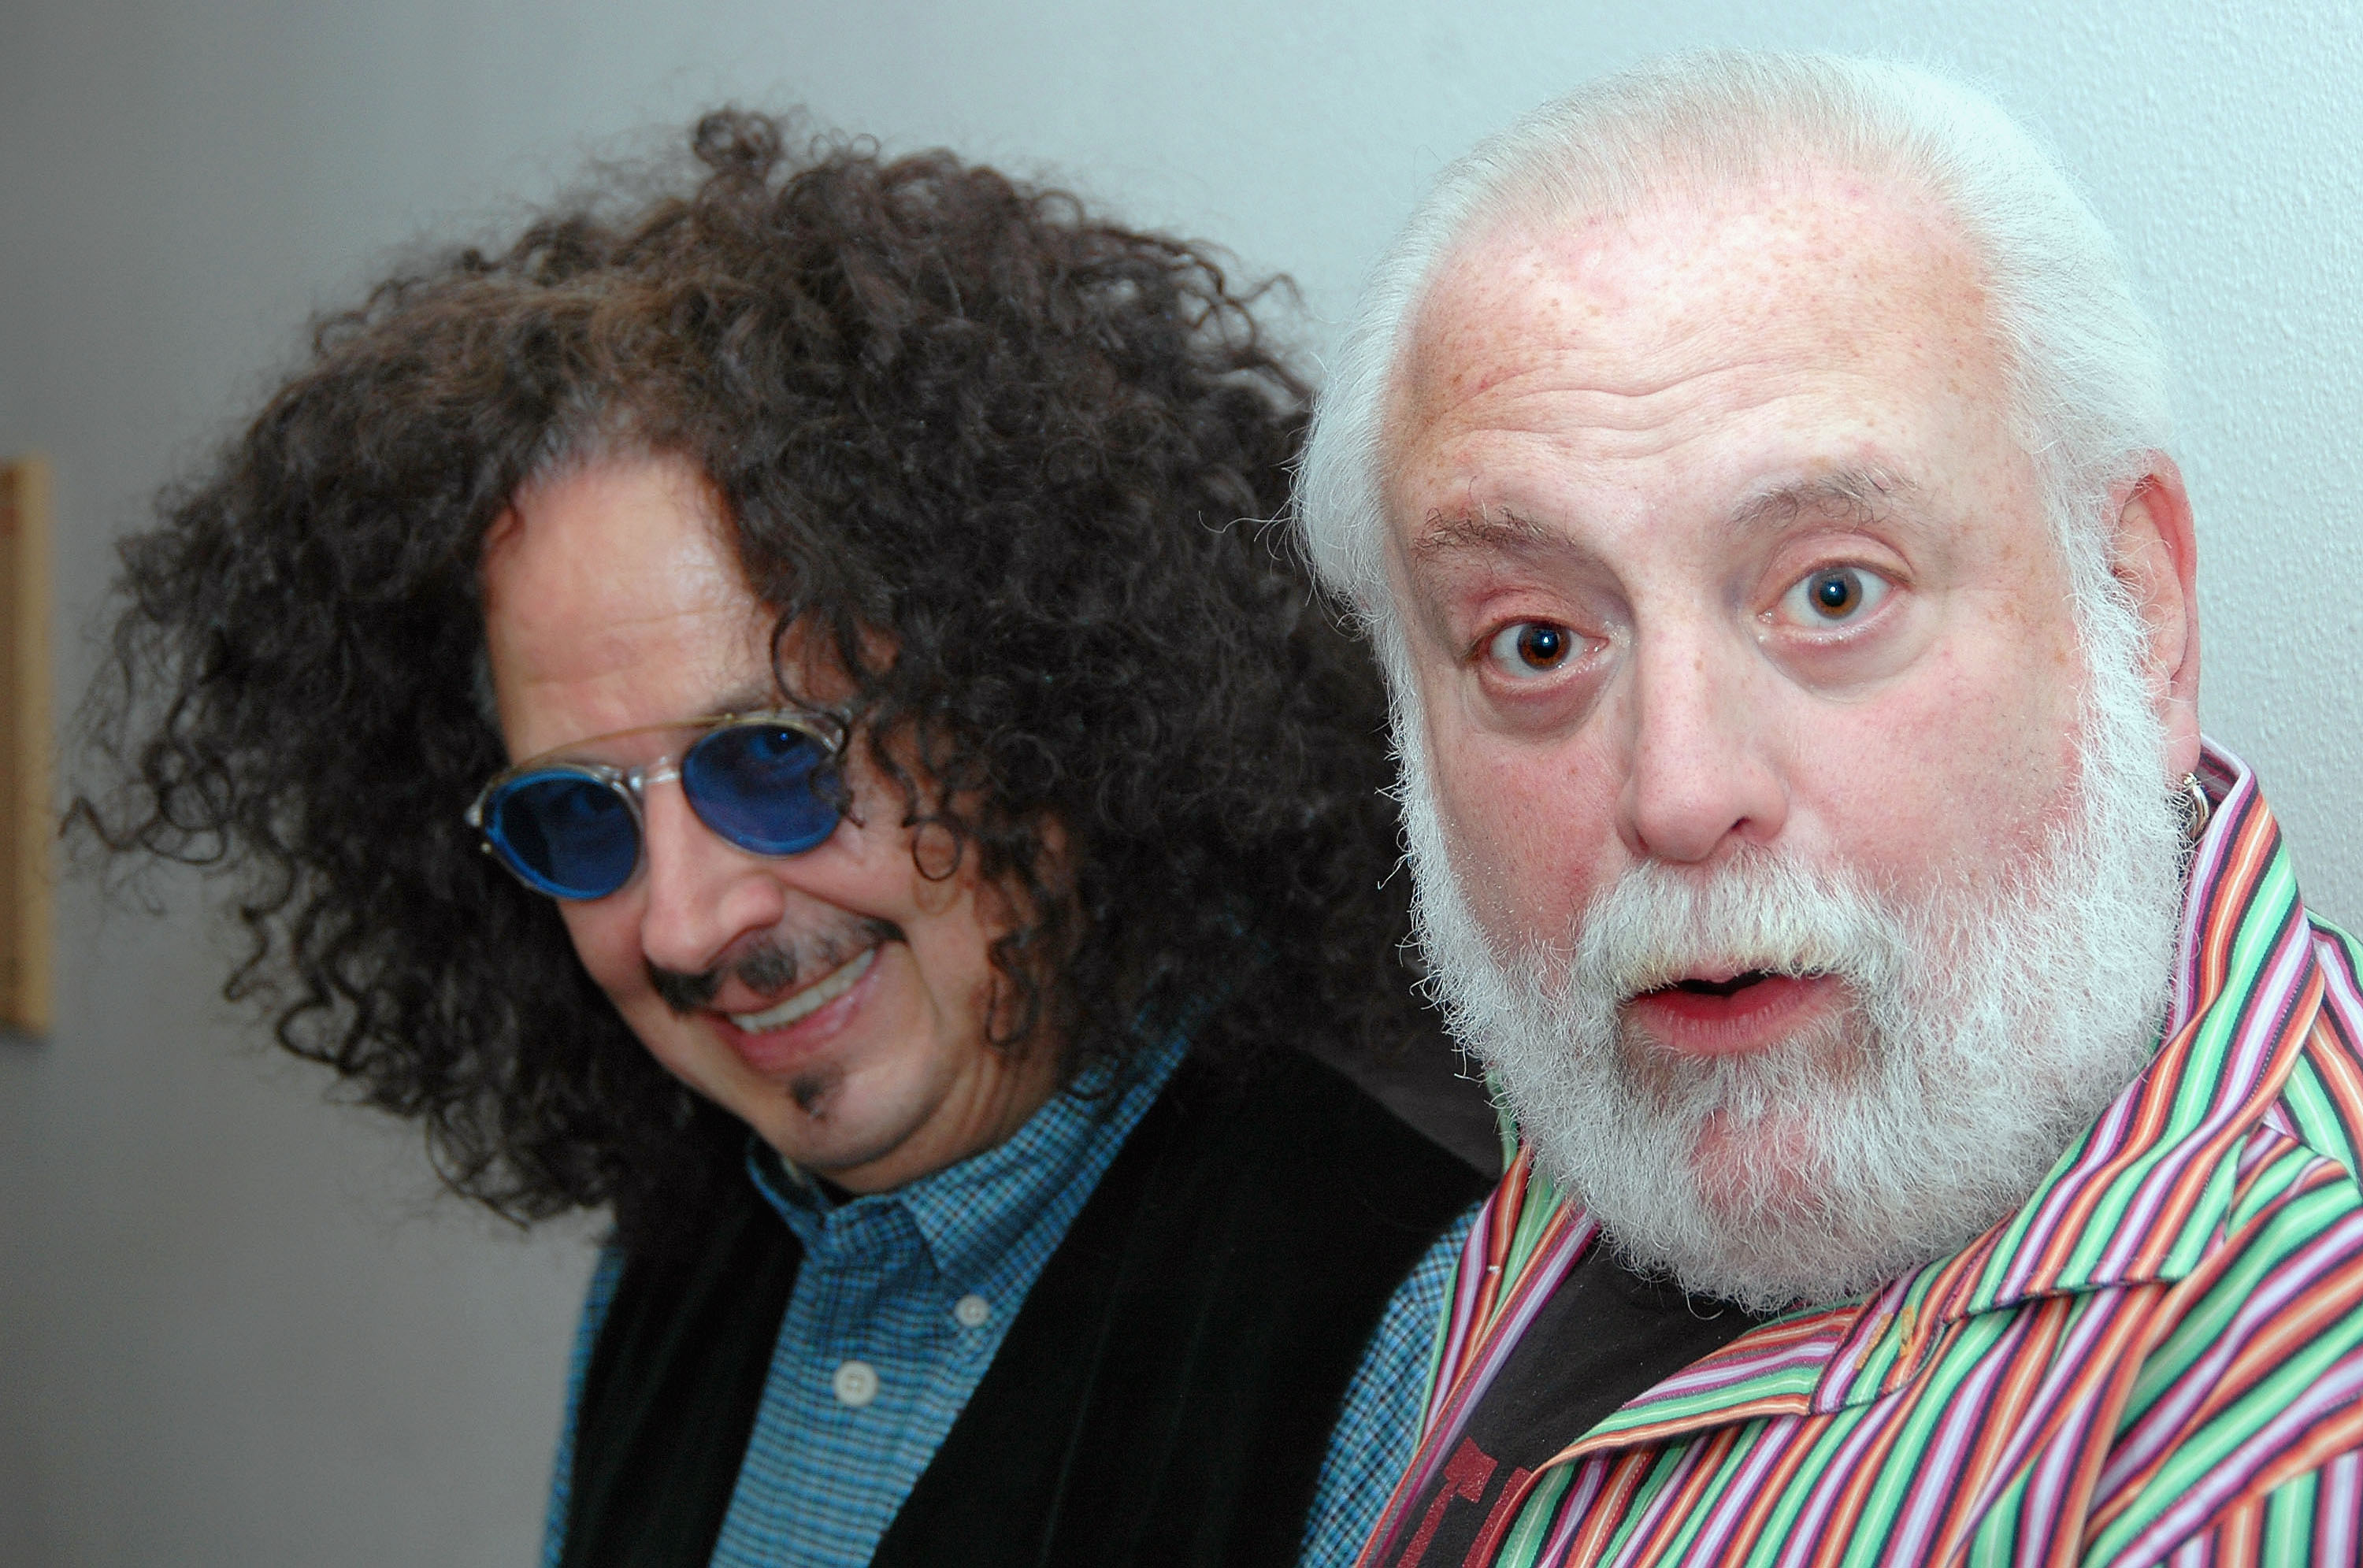 Mark Volman and Howard Kaylan of the 1960's pop-rock group The Turtles pose backstage at Route 66 Casino Legends Theater on July 30, 2005 in Albuquerque, New Mexico. After The Turtles disbanded in 1970, Volman and Kaylan joined Frank Zappa and the Mothers of Invention and later recorded as Flo & Eddie.